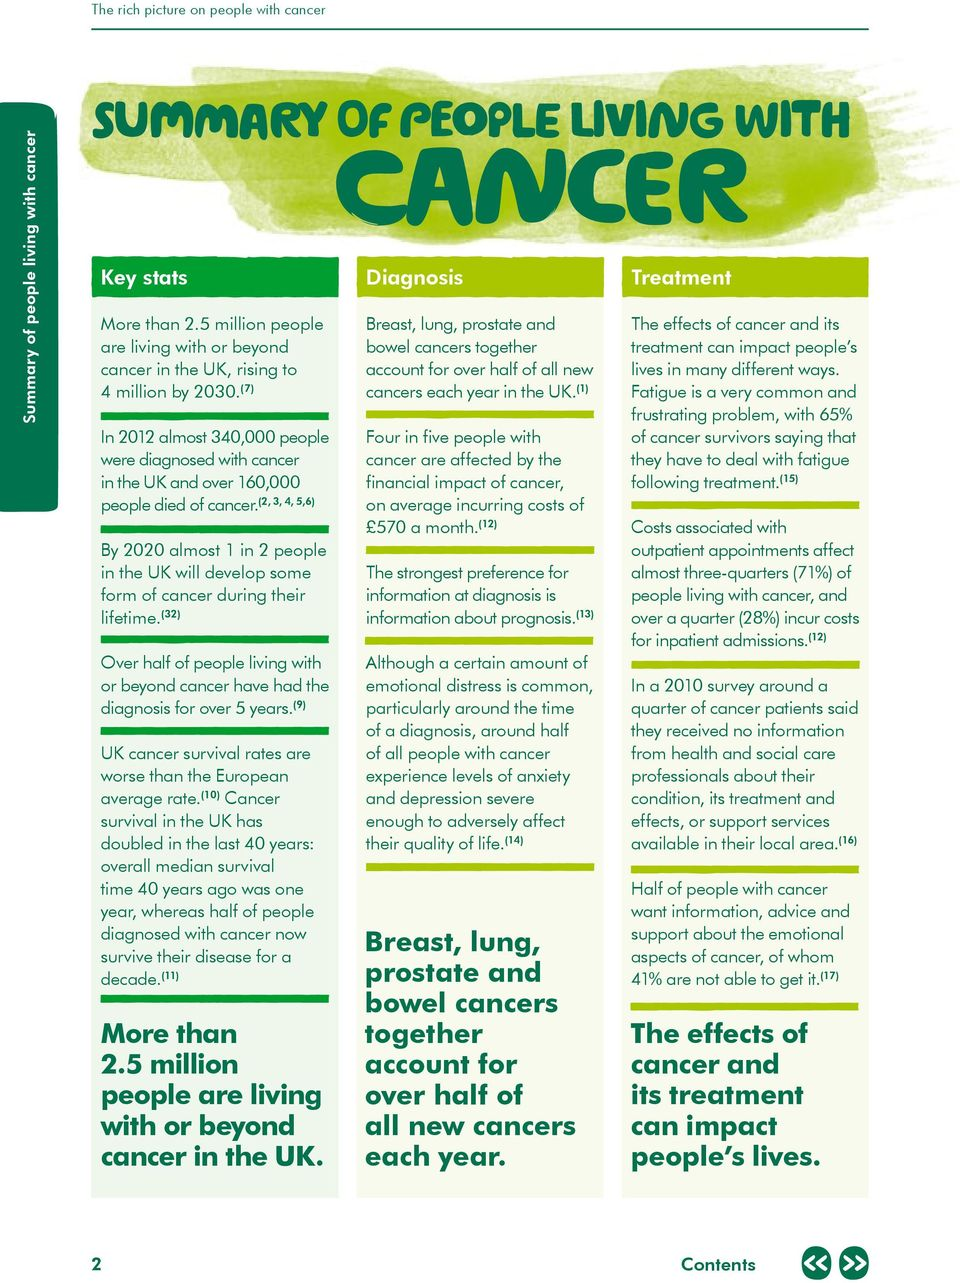 (7) In 2012 almost 340,000 people were diagnosed with cancer in the UK and over 160,000 (2, 3, 4, 5,6) people died of cancer.